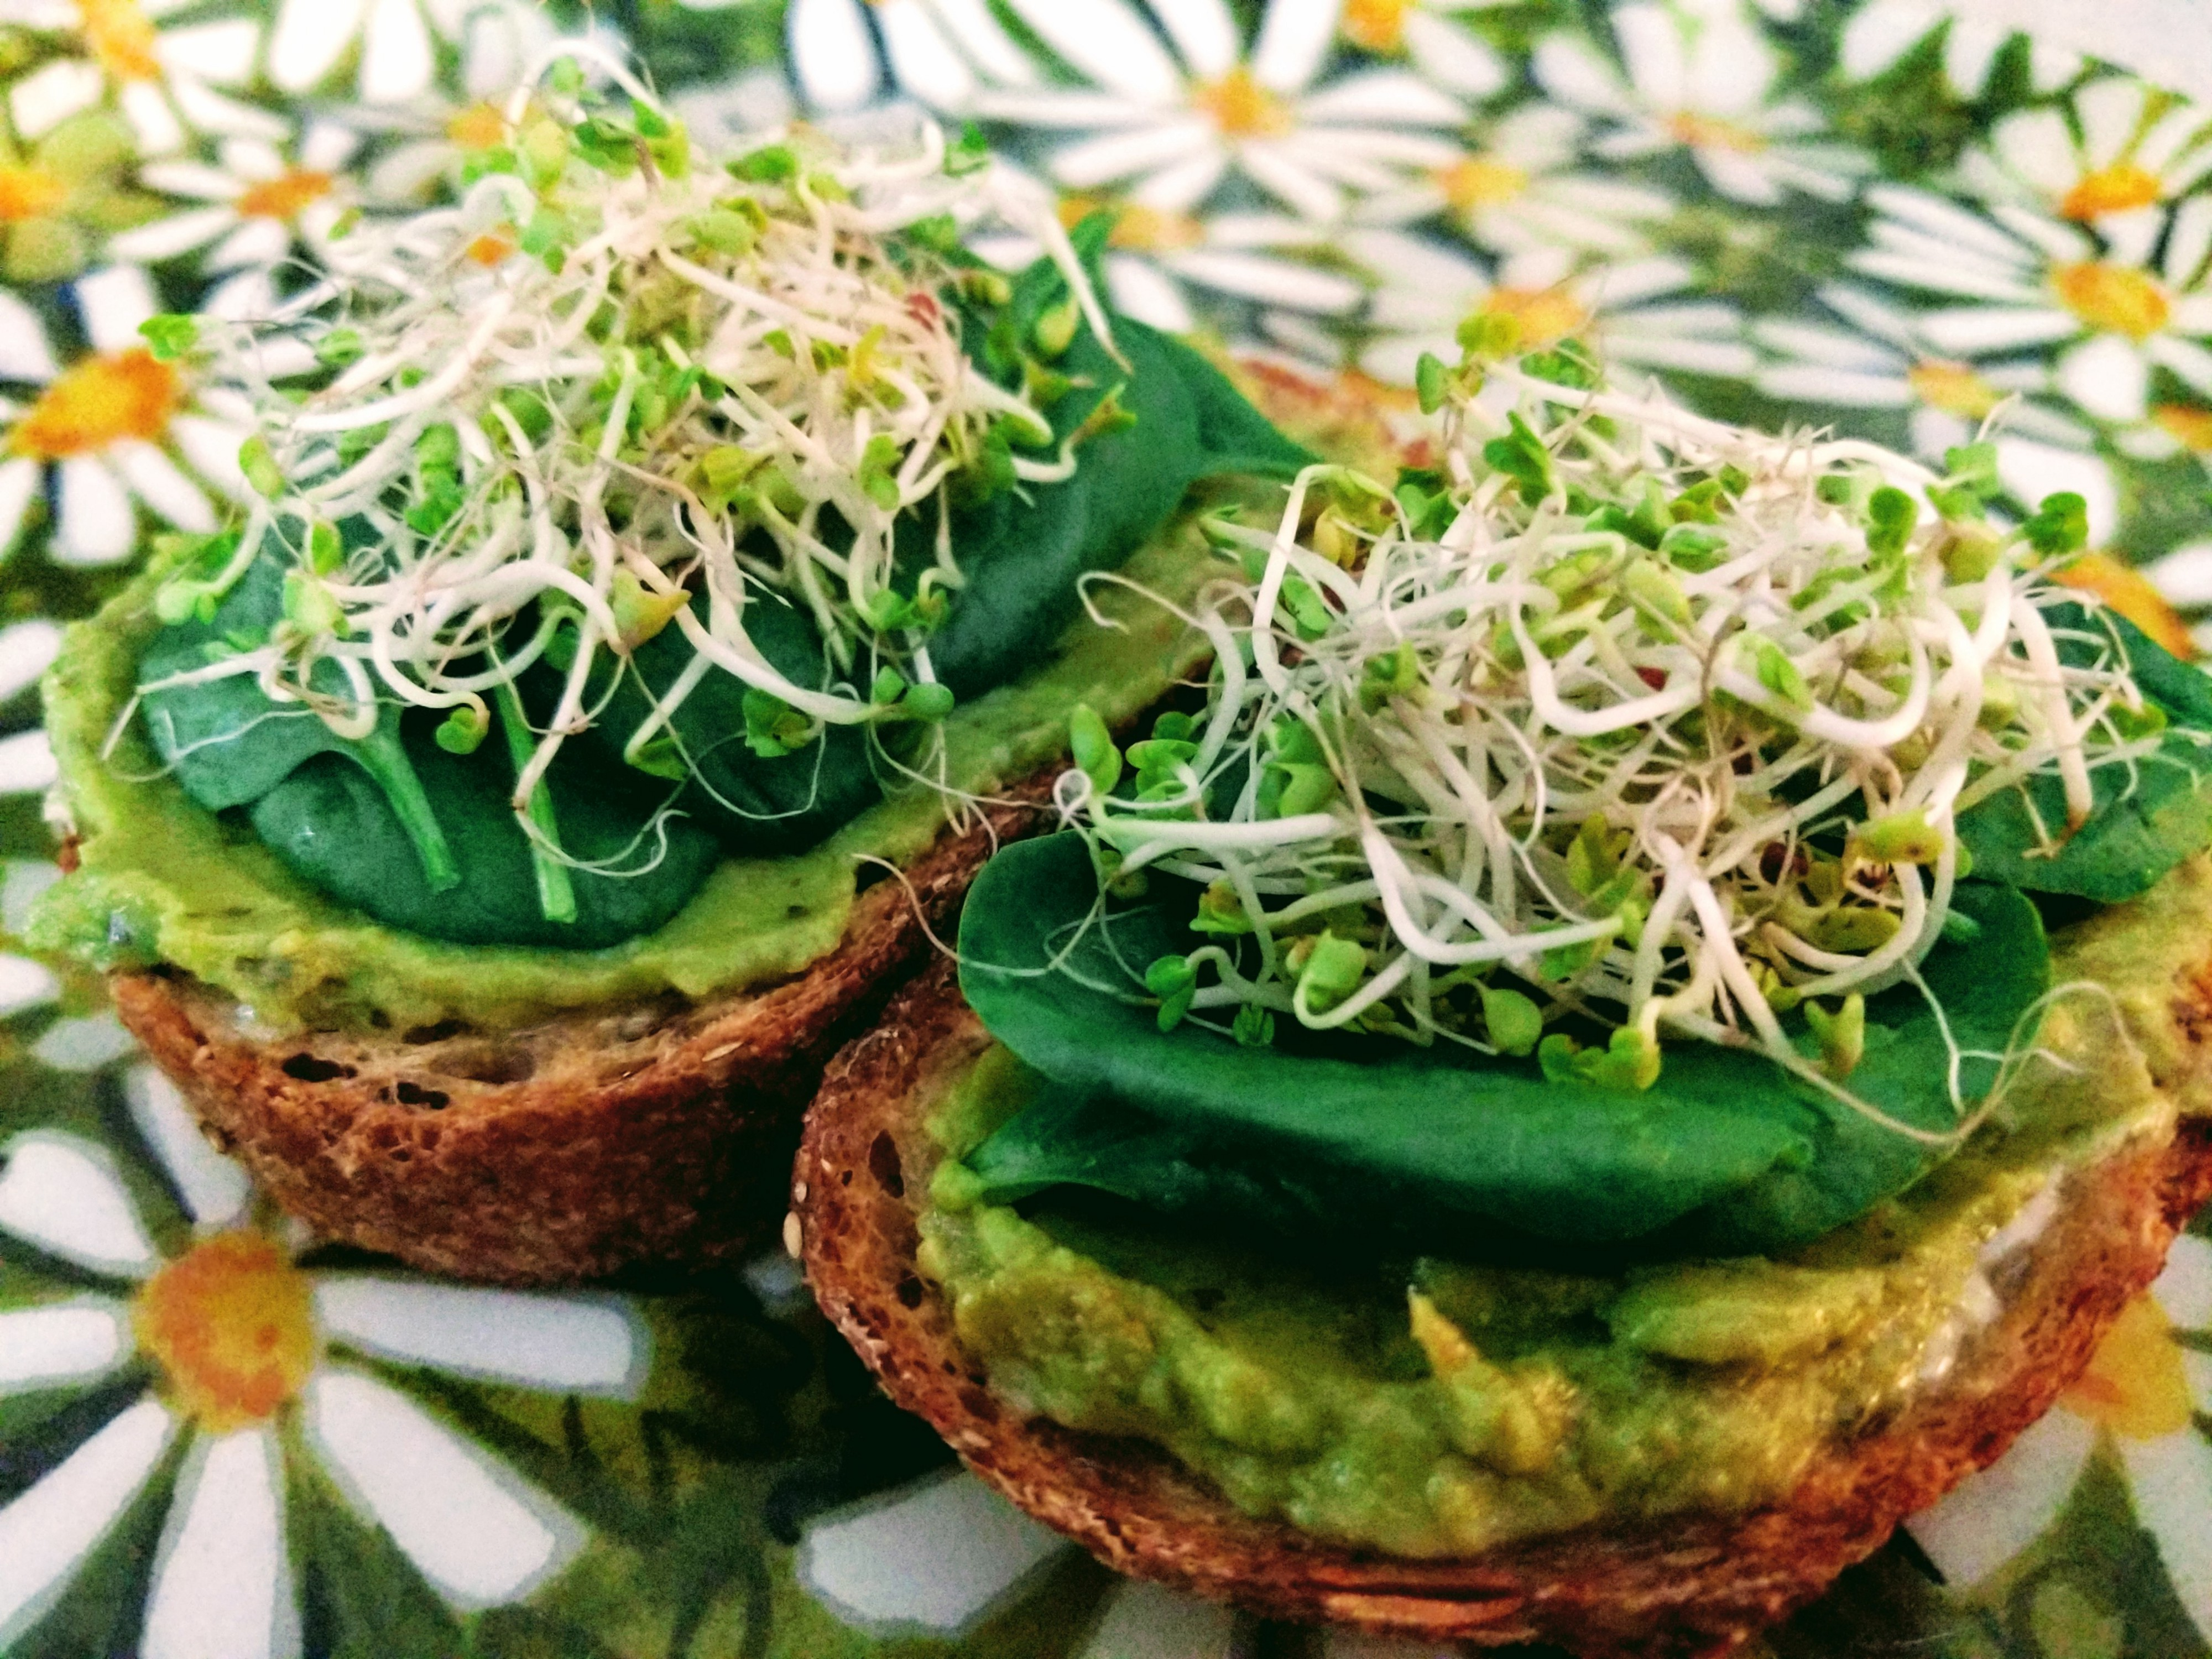 Avocado toast topped with fresh spinach and sprouts on a flowered food tray.